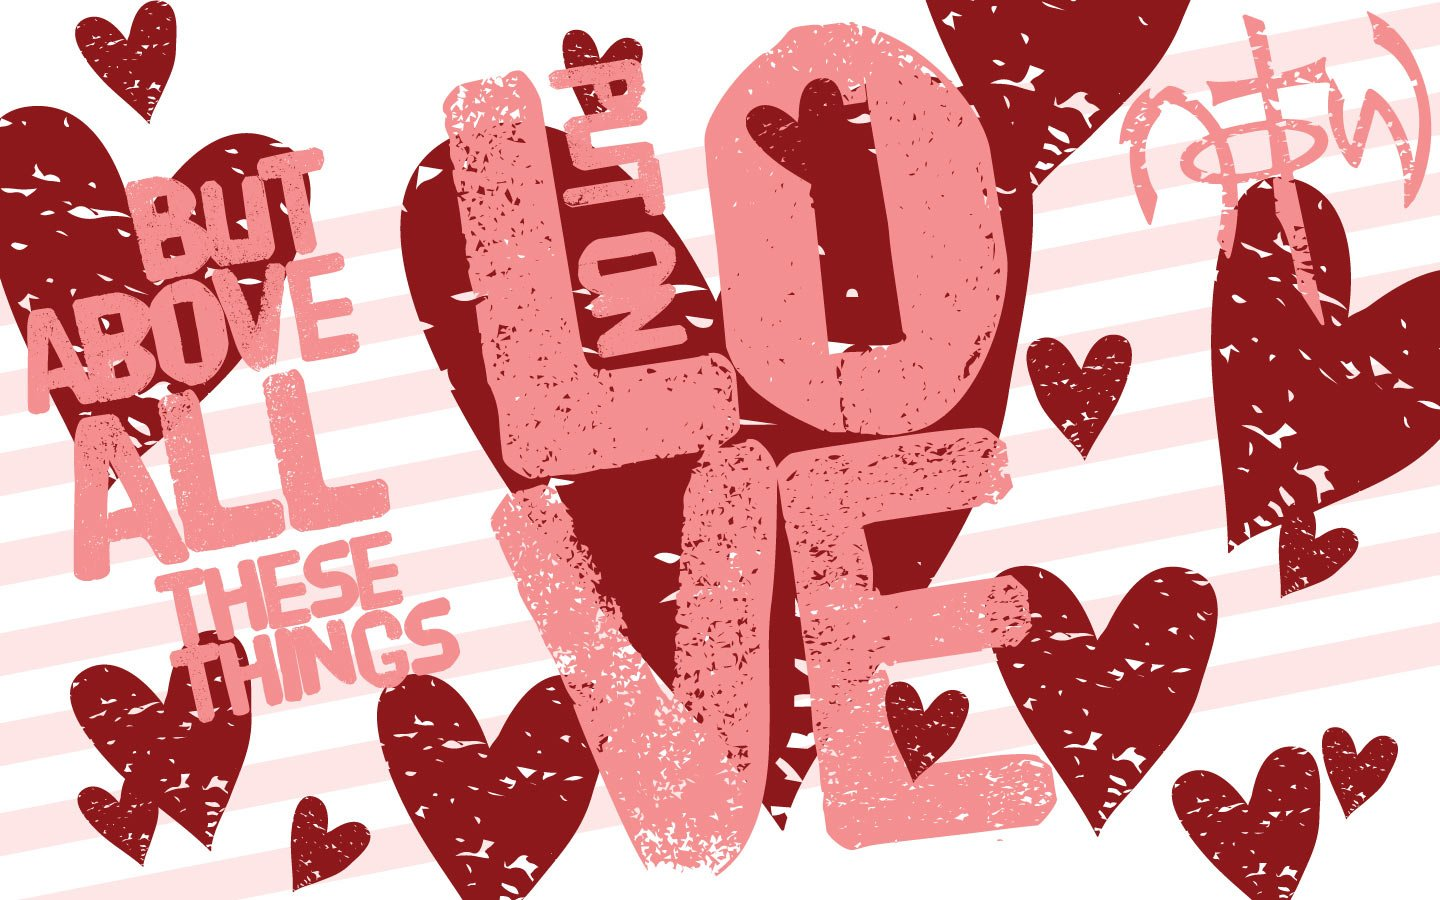 Christian Valentine's Desktop Wallpaper